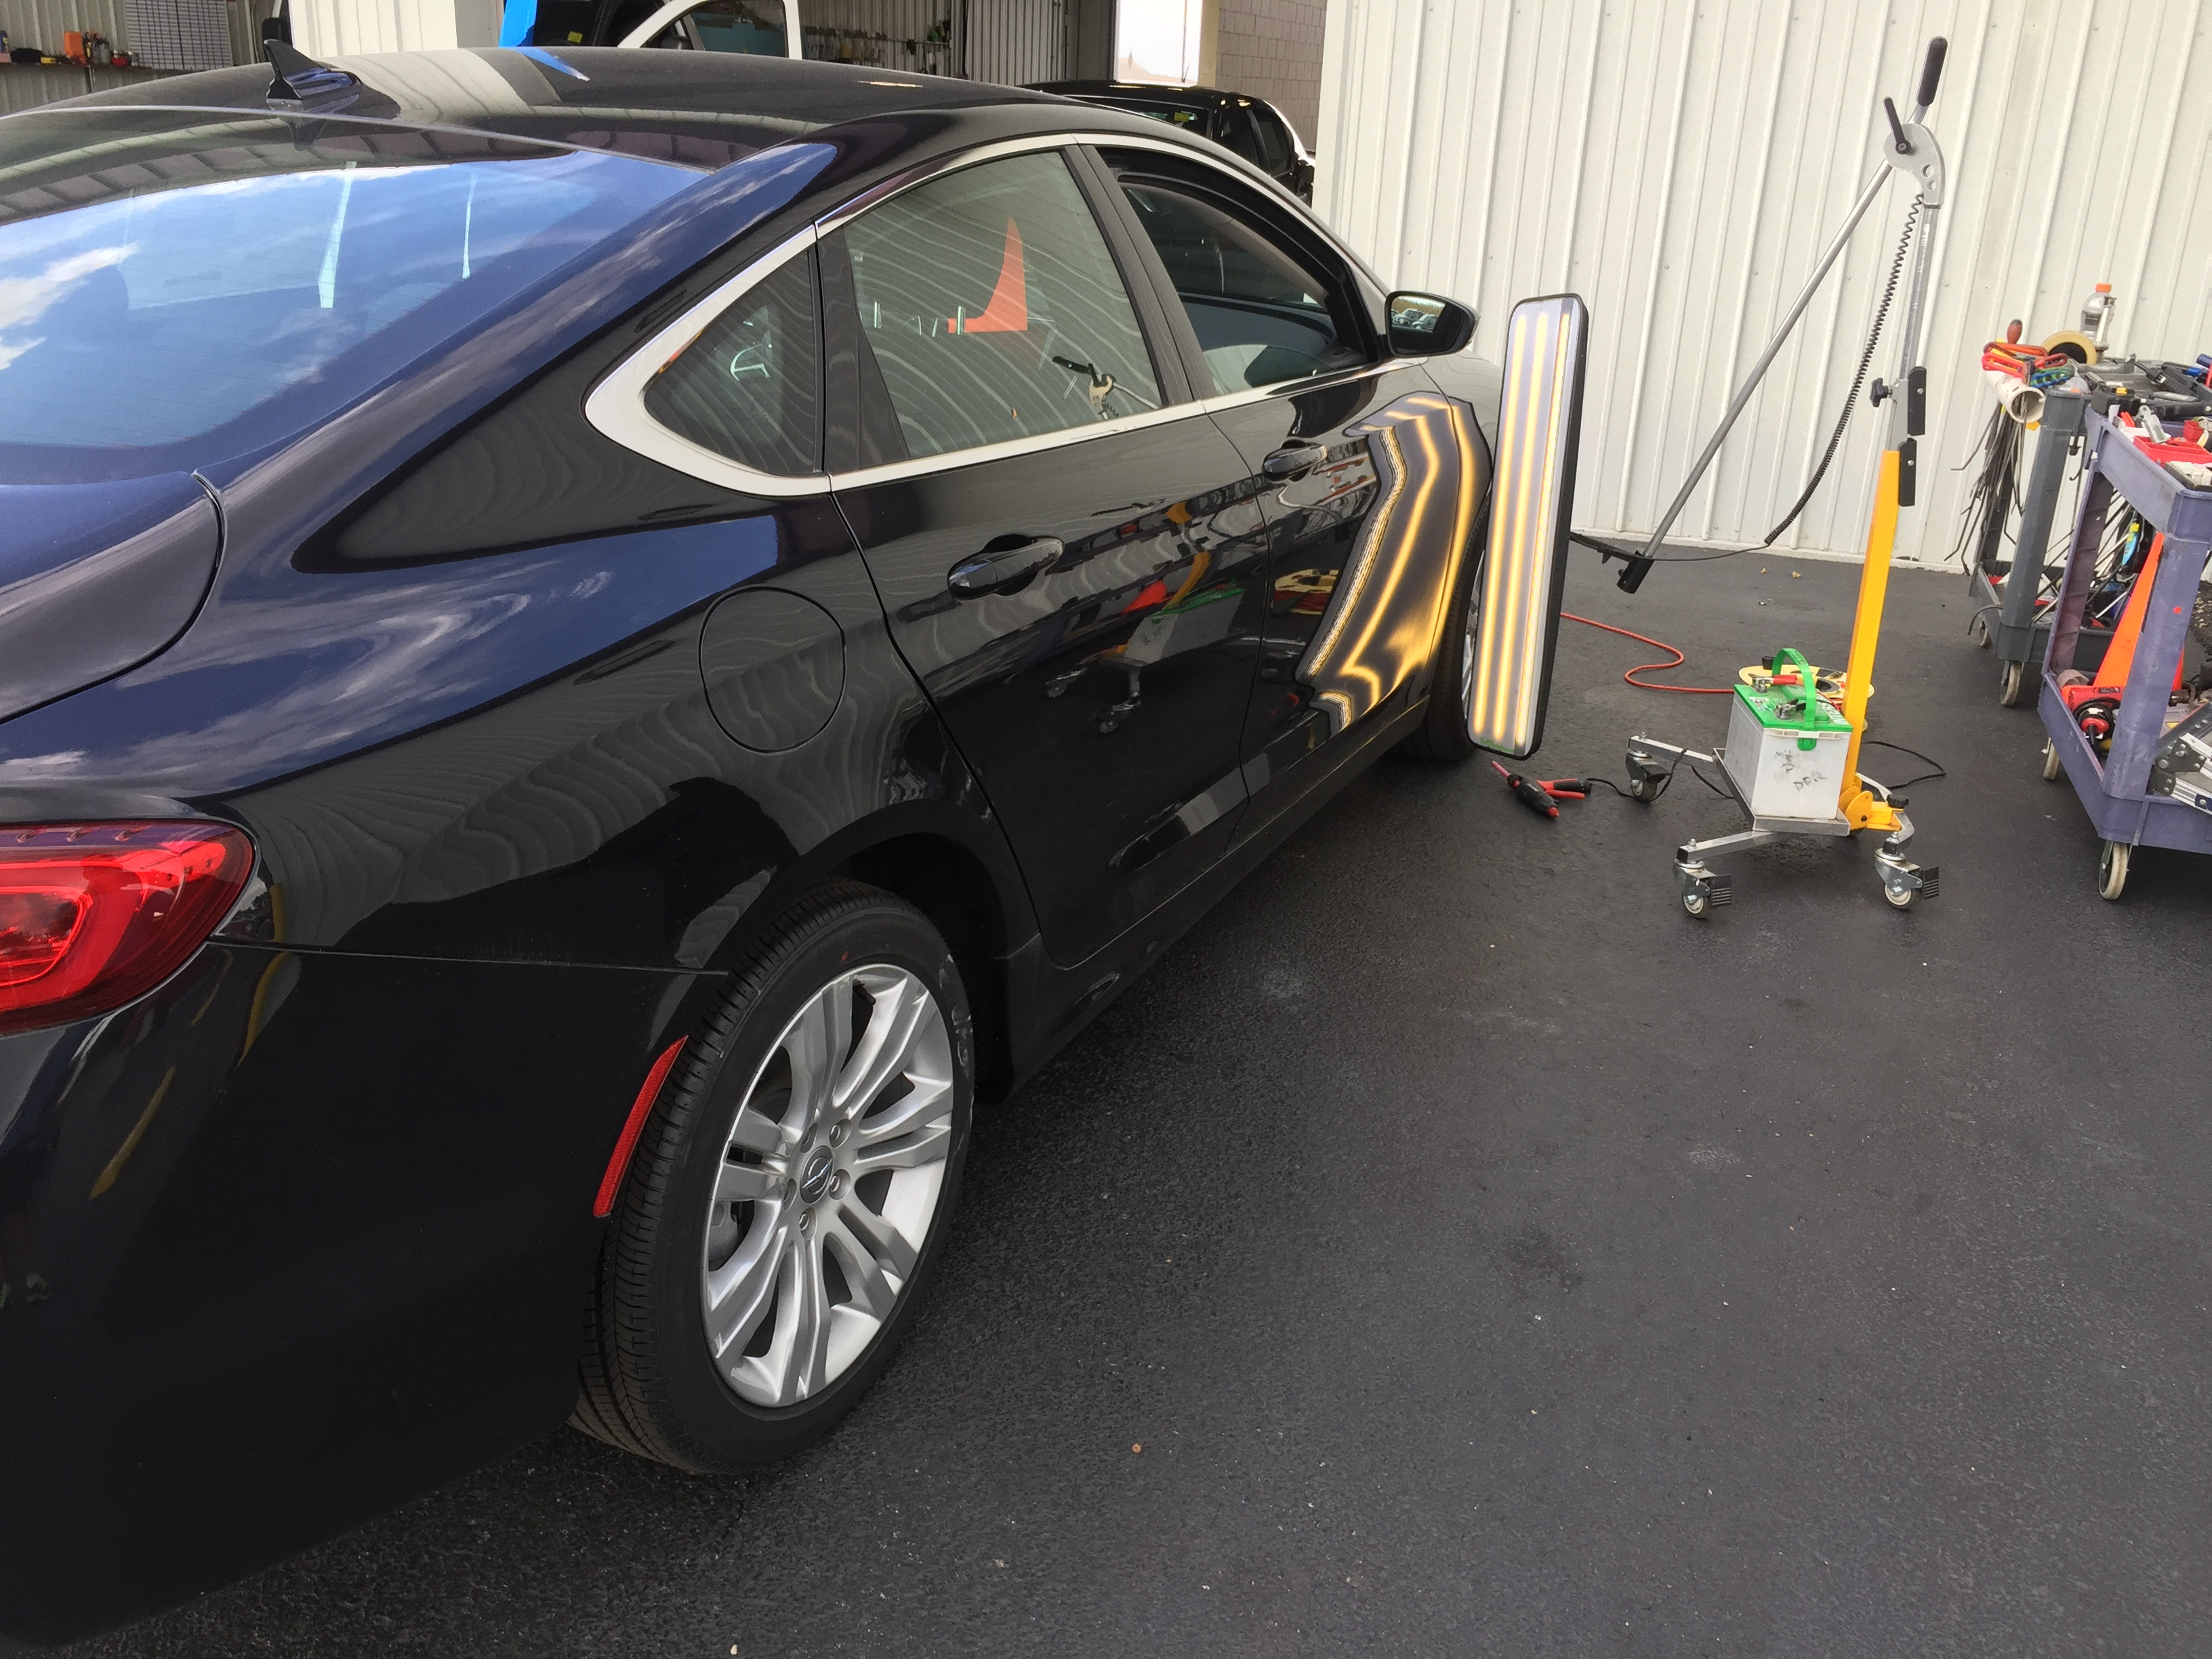 2016 Chrysler 200 Dent Removal, Springfield, IL. http://217dent.com Springfield Dent Removal, Ding repair, dent repair.